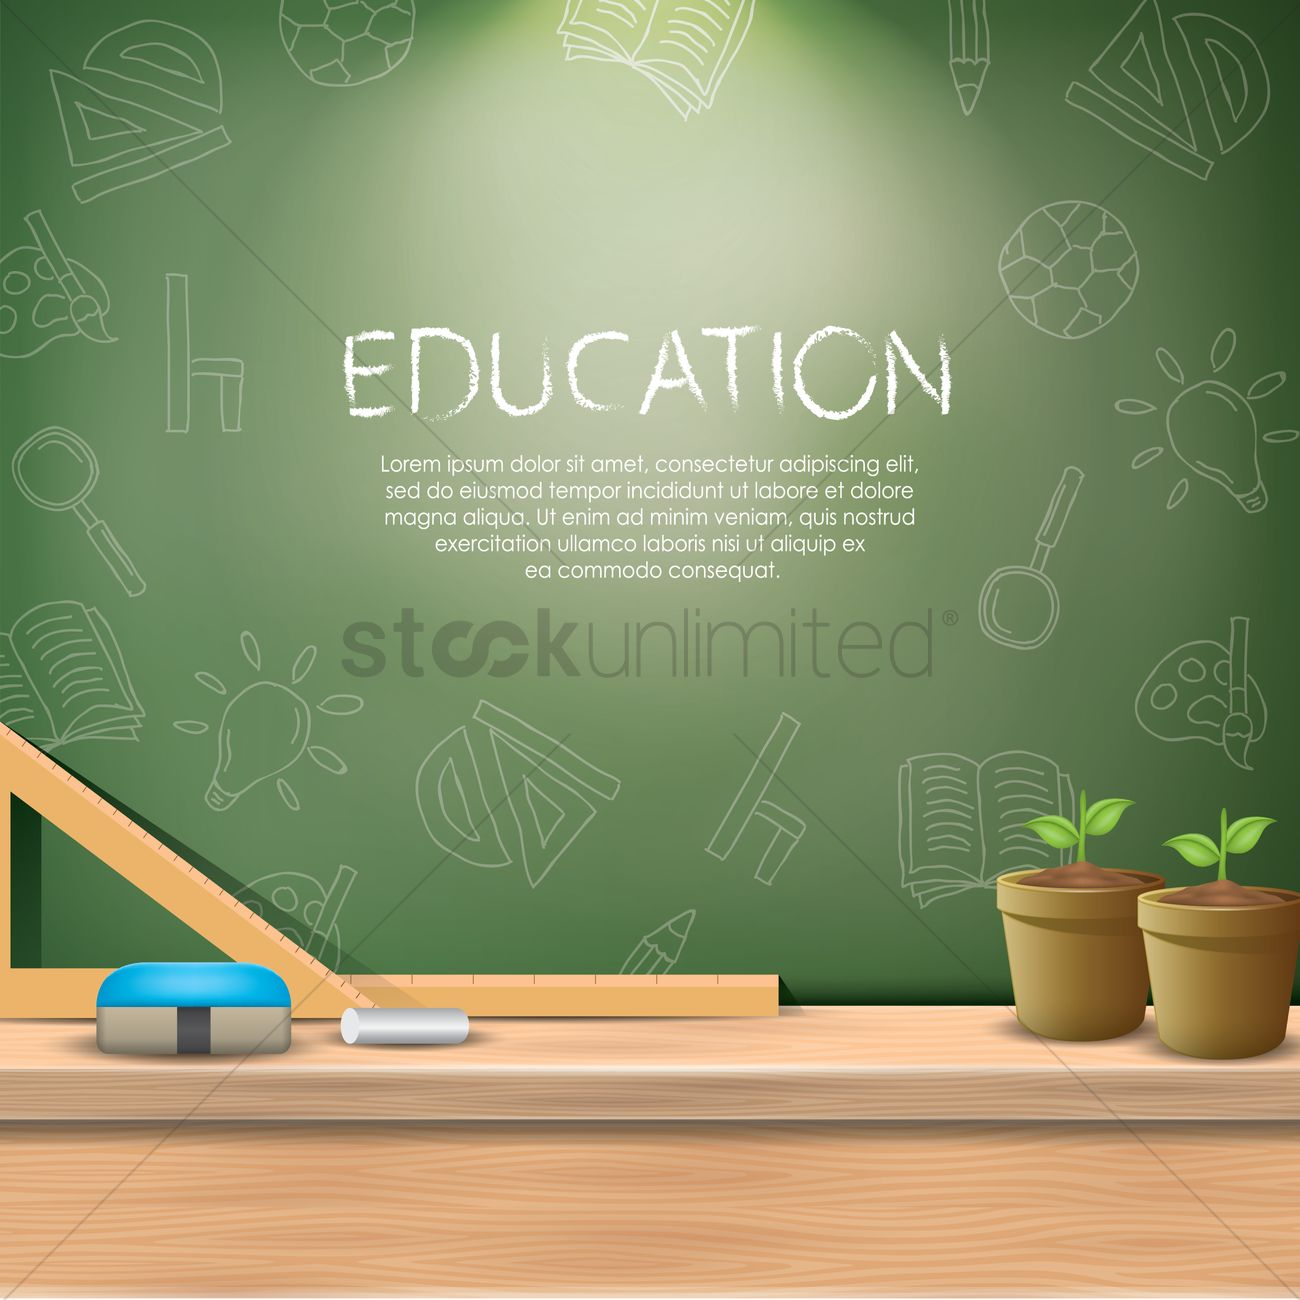 education-wallpaper_1821872.jpg